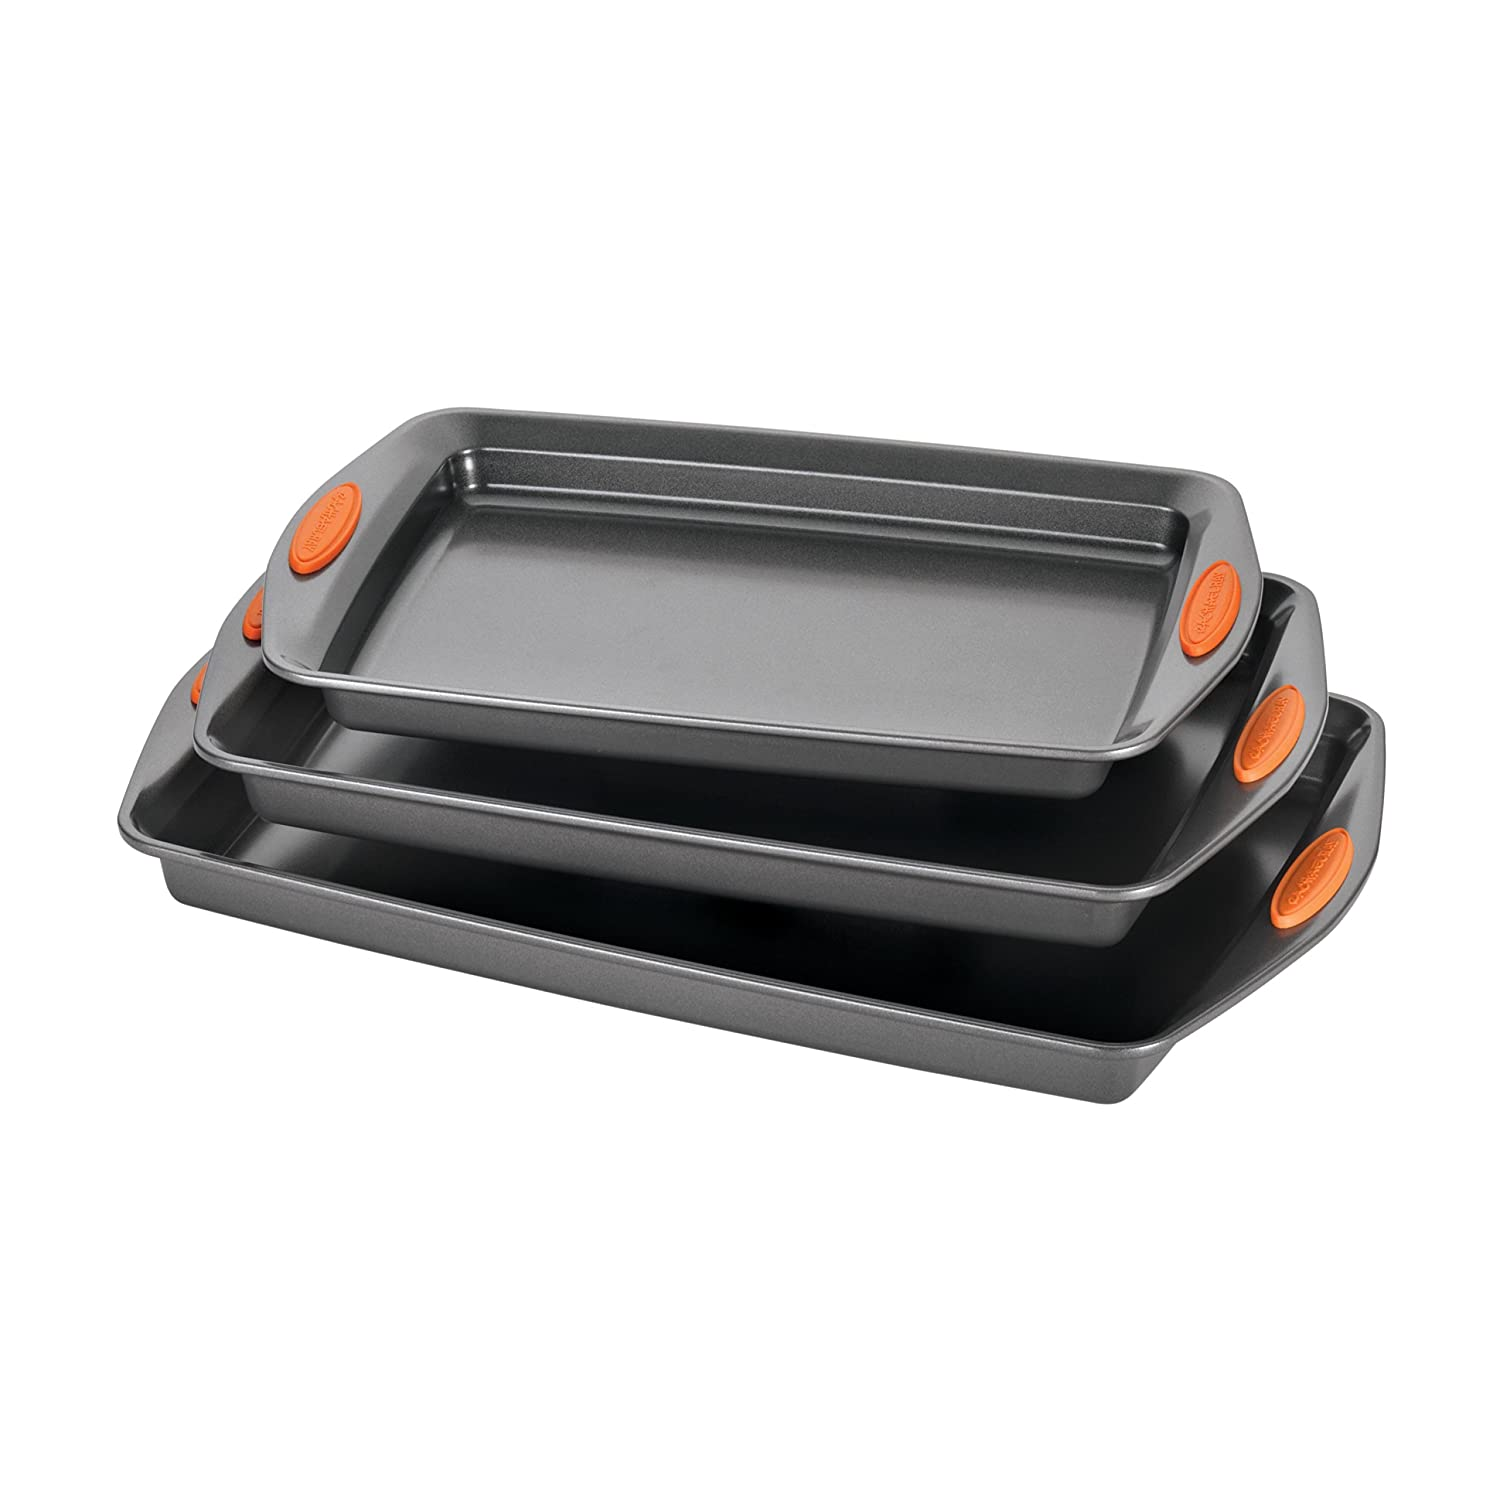 Rachael Ray Yum-o! Nonstick Bakeware 3-Piece Oven Lovin' Cookie Pan